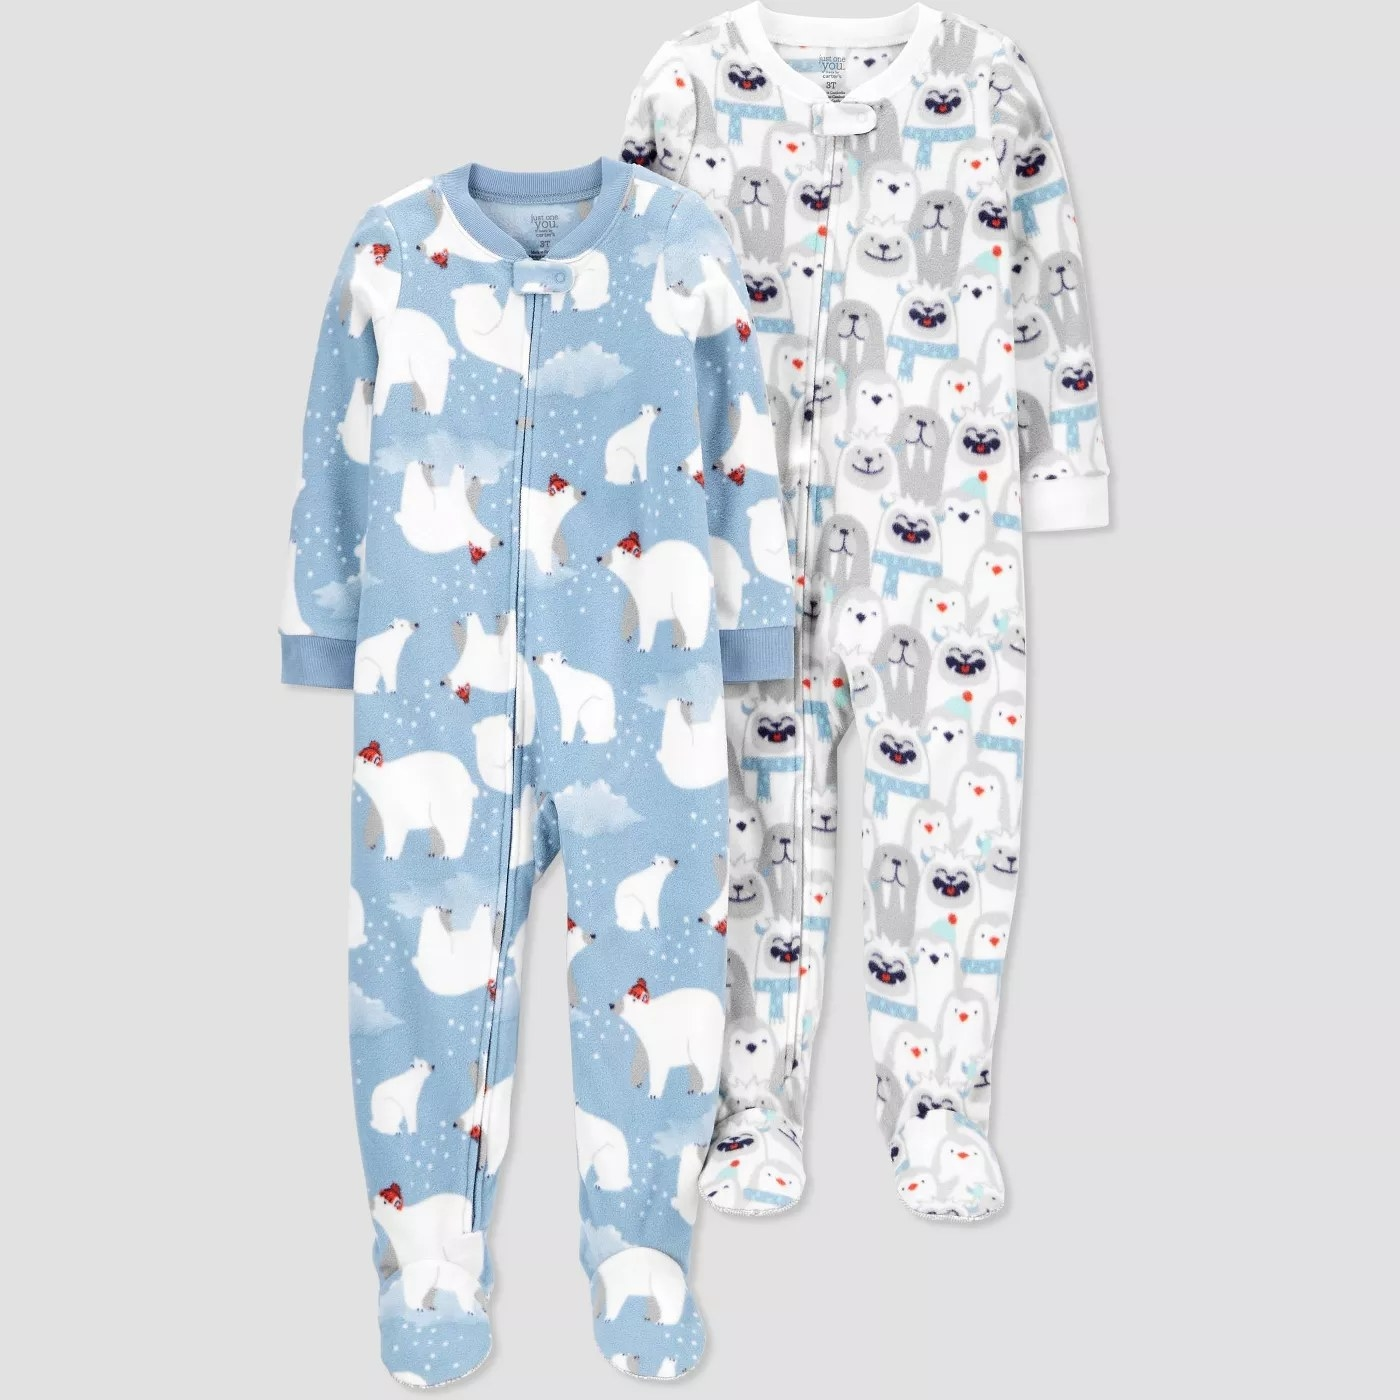 A blue, footed pajama with a polar bear pattern and a white pair with a yeti pattern